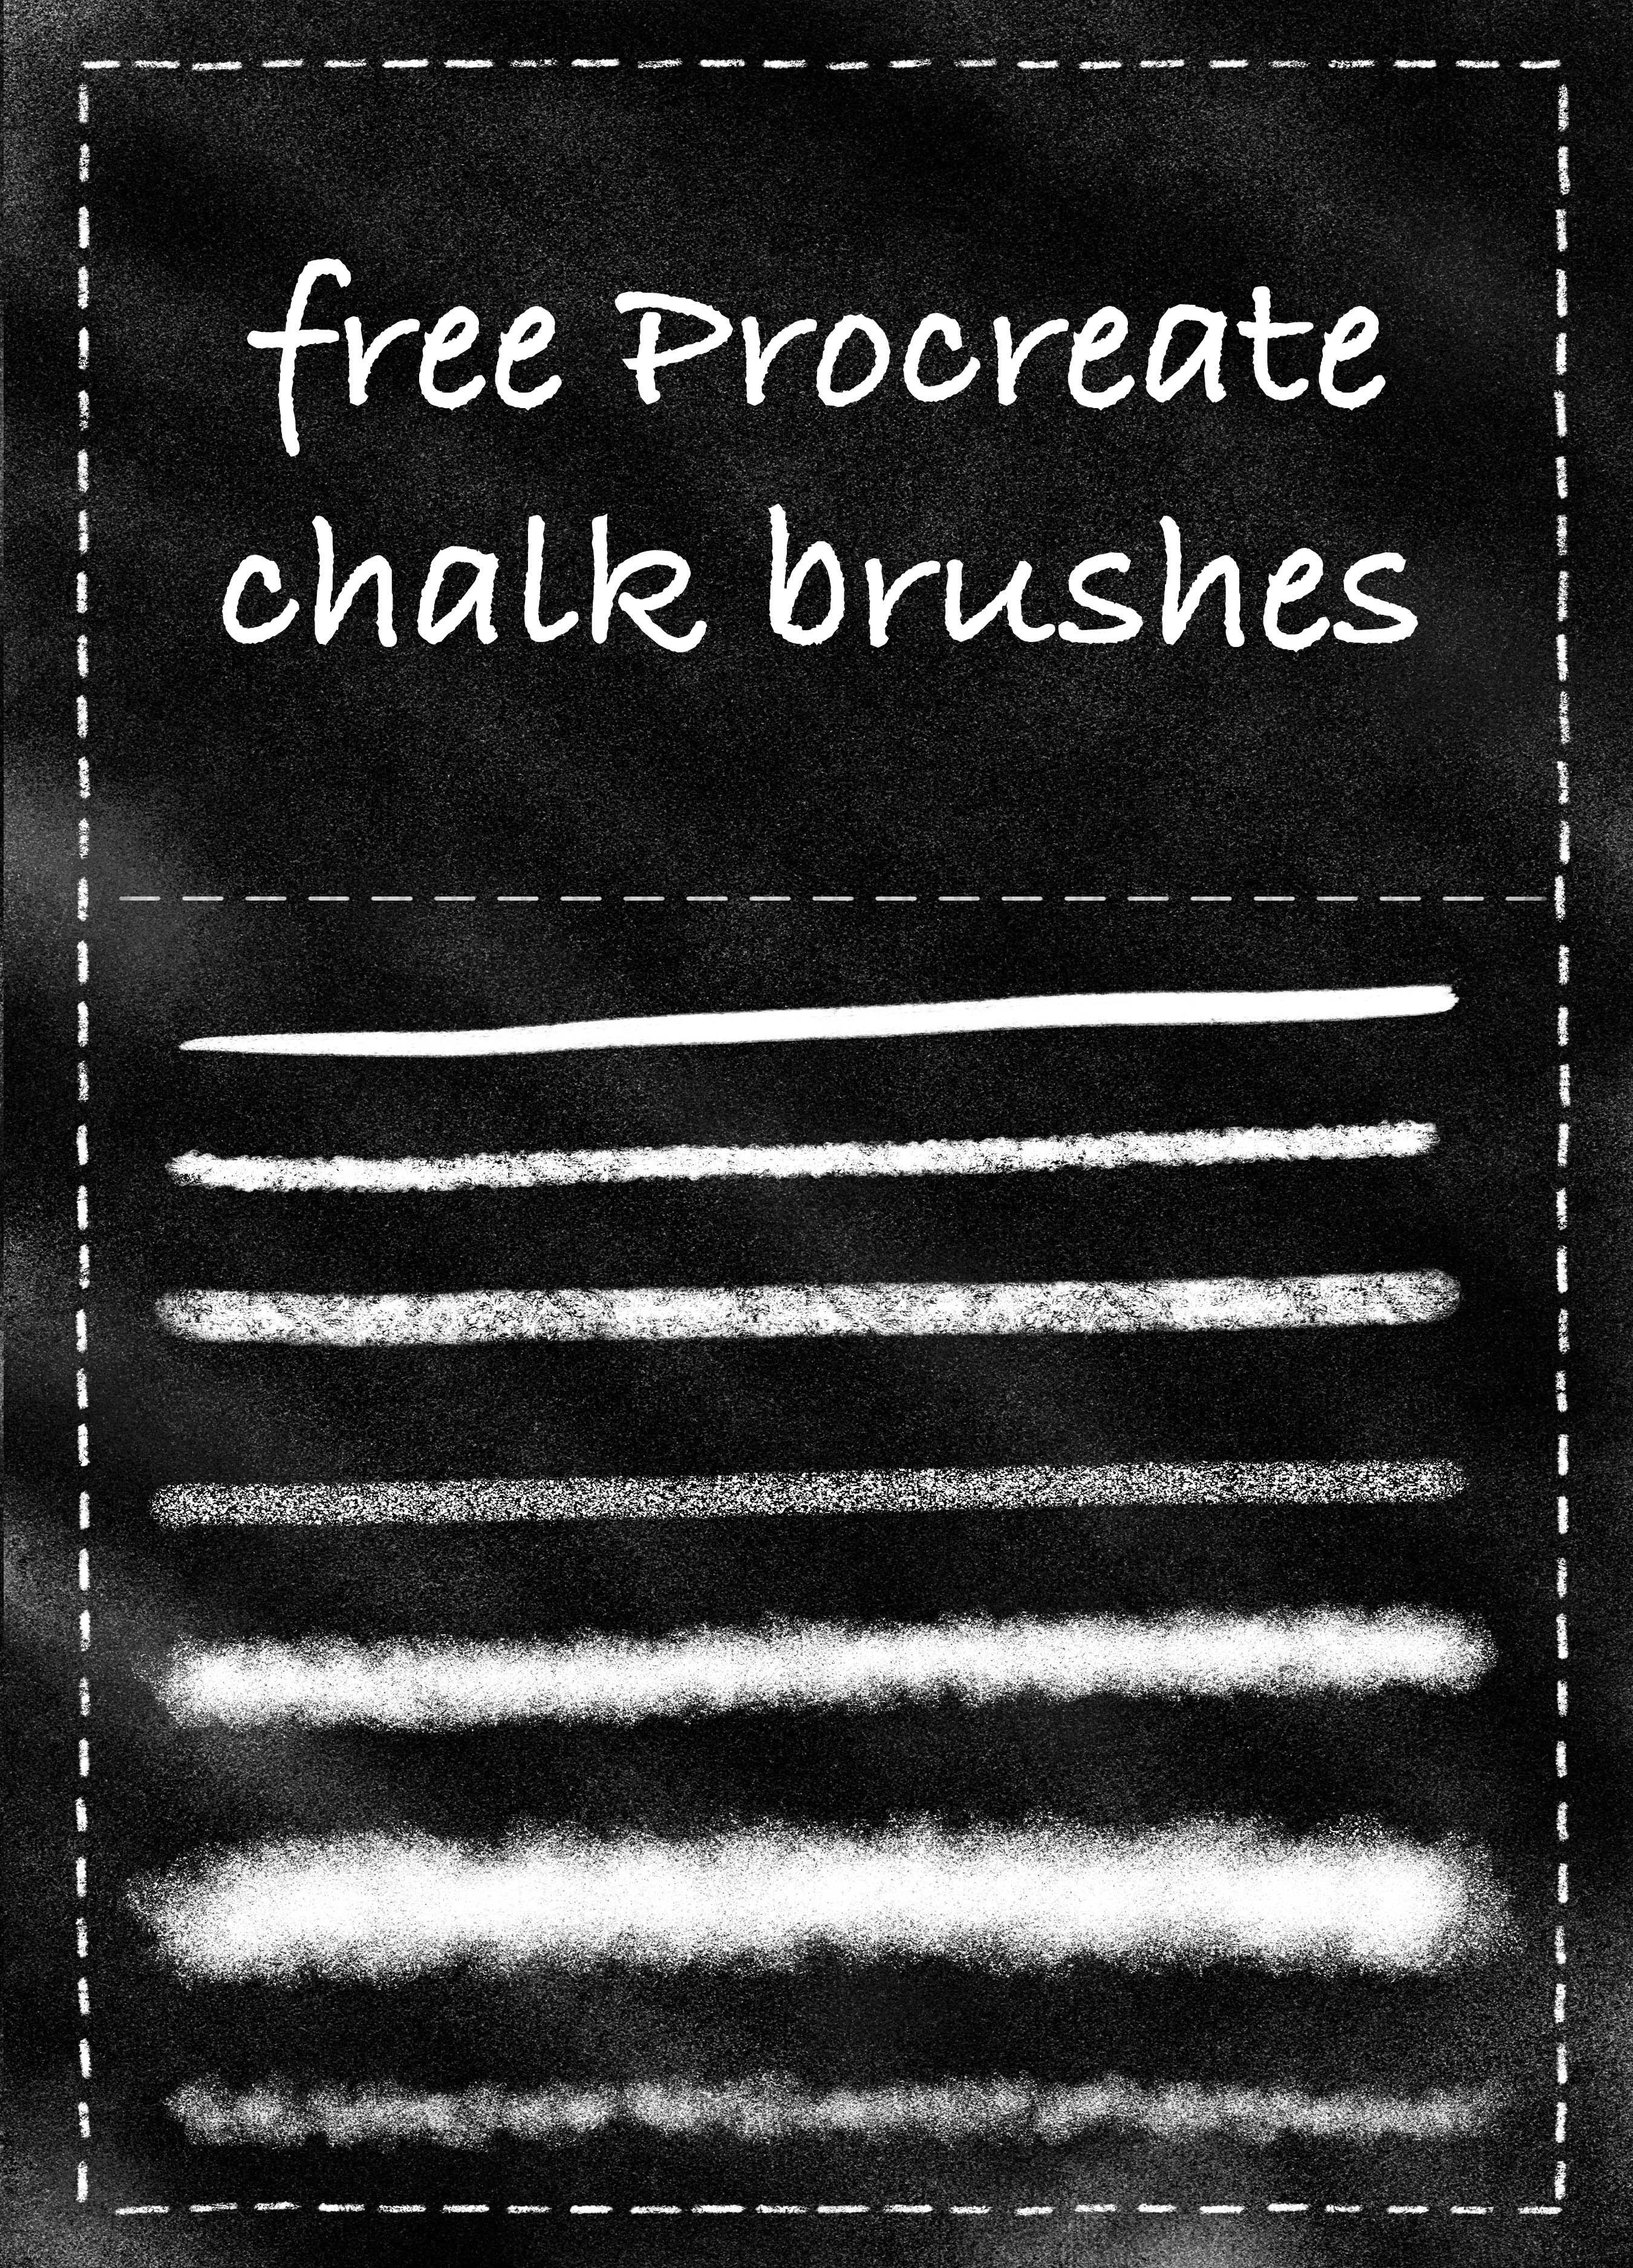 Download Free Chalk Lettering Templates, Chalk Brushes, & Fonts for ...